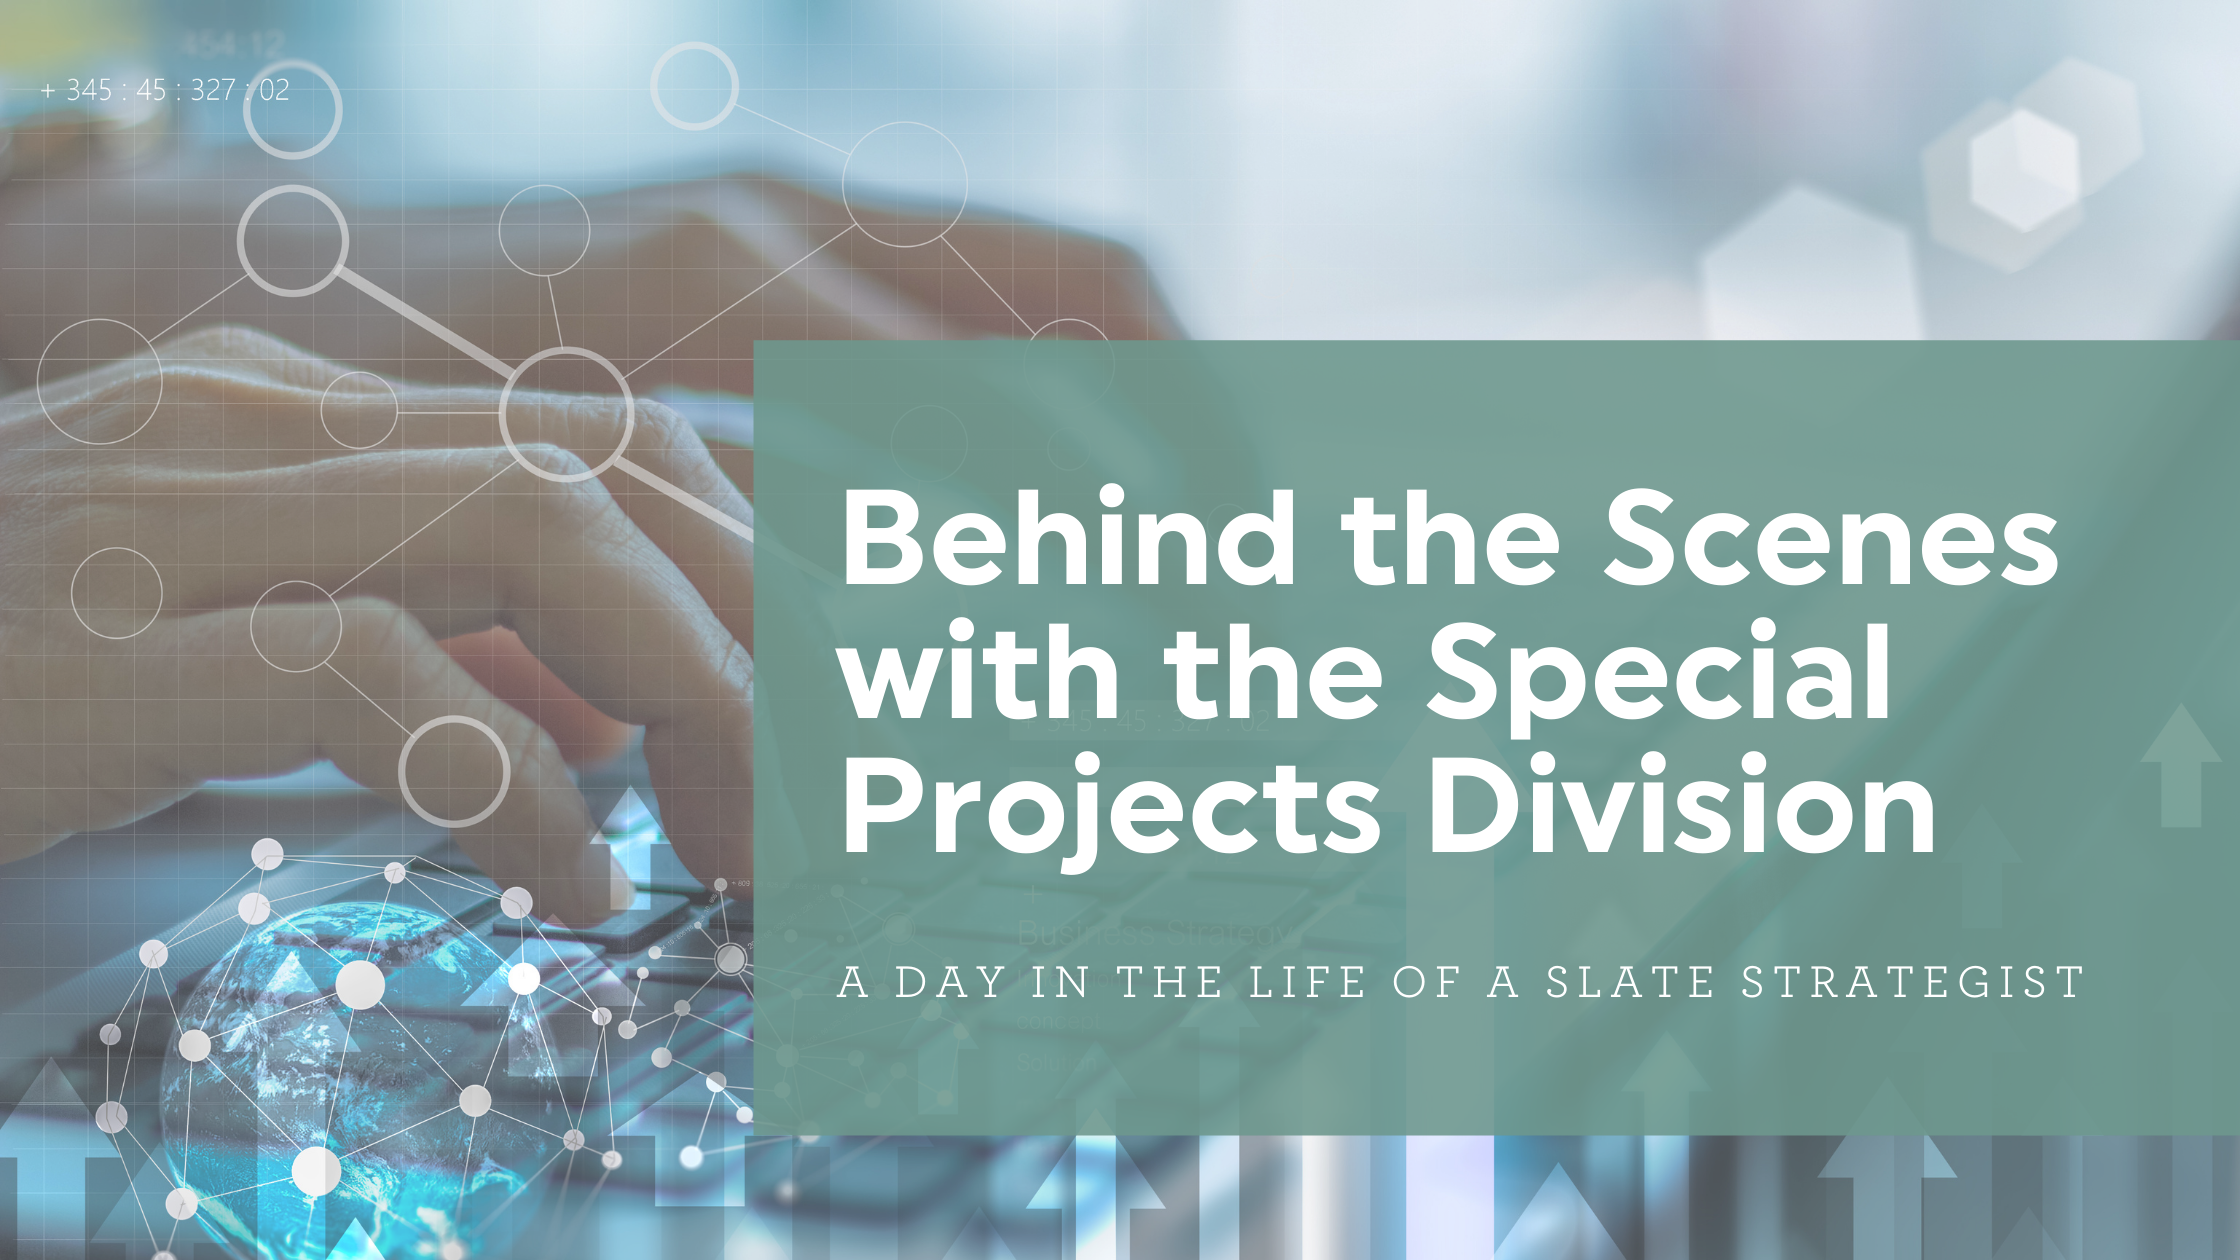 Behind the Scenes with the Special Projects Division